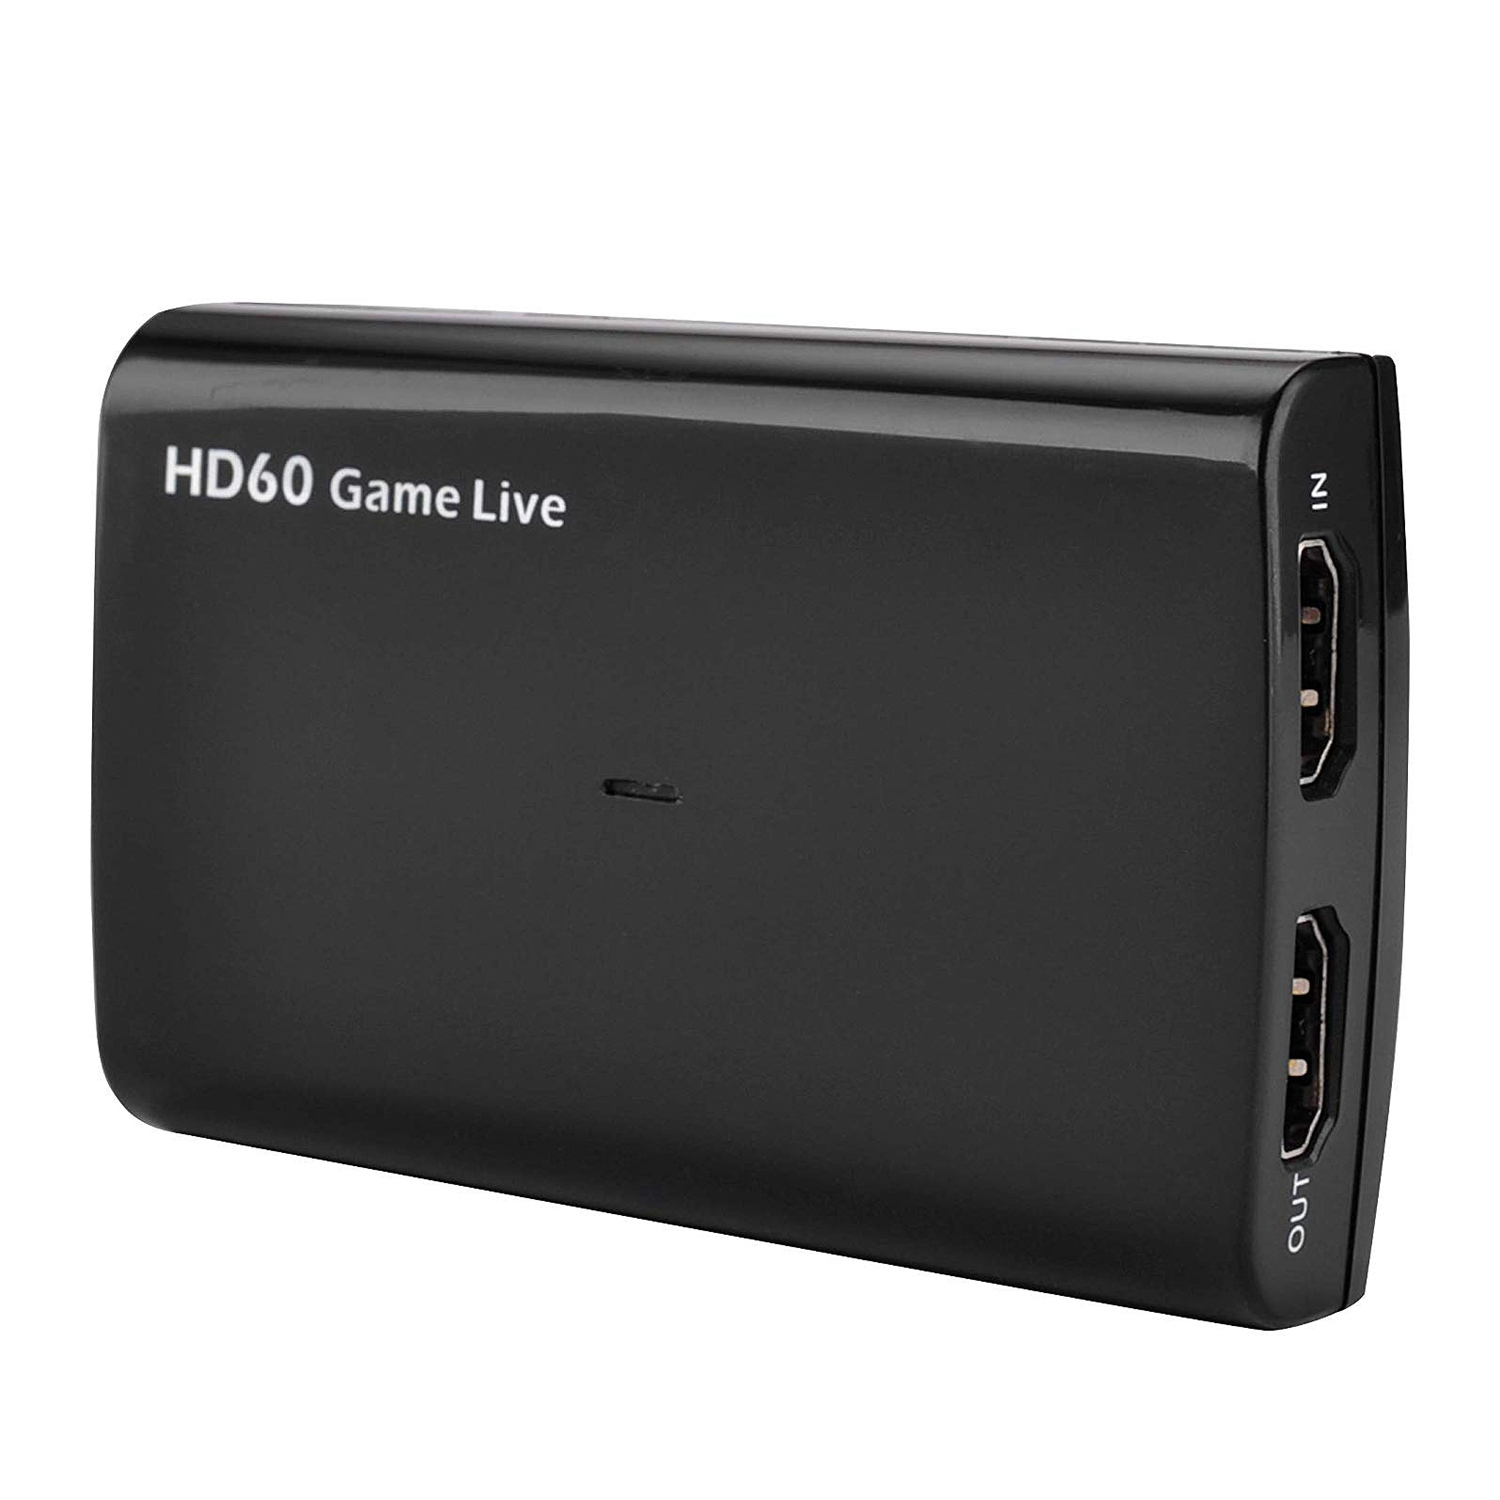 4K Hdmi Input And Bypass Usb3.0 Uvc Game Capture With Microphone Input, Record Up To 1080P 60Fps Hdmi To Uvc Video Capture Car